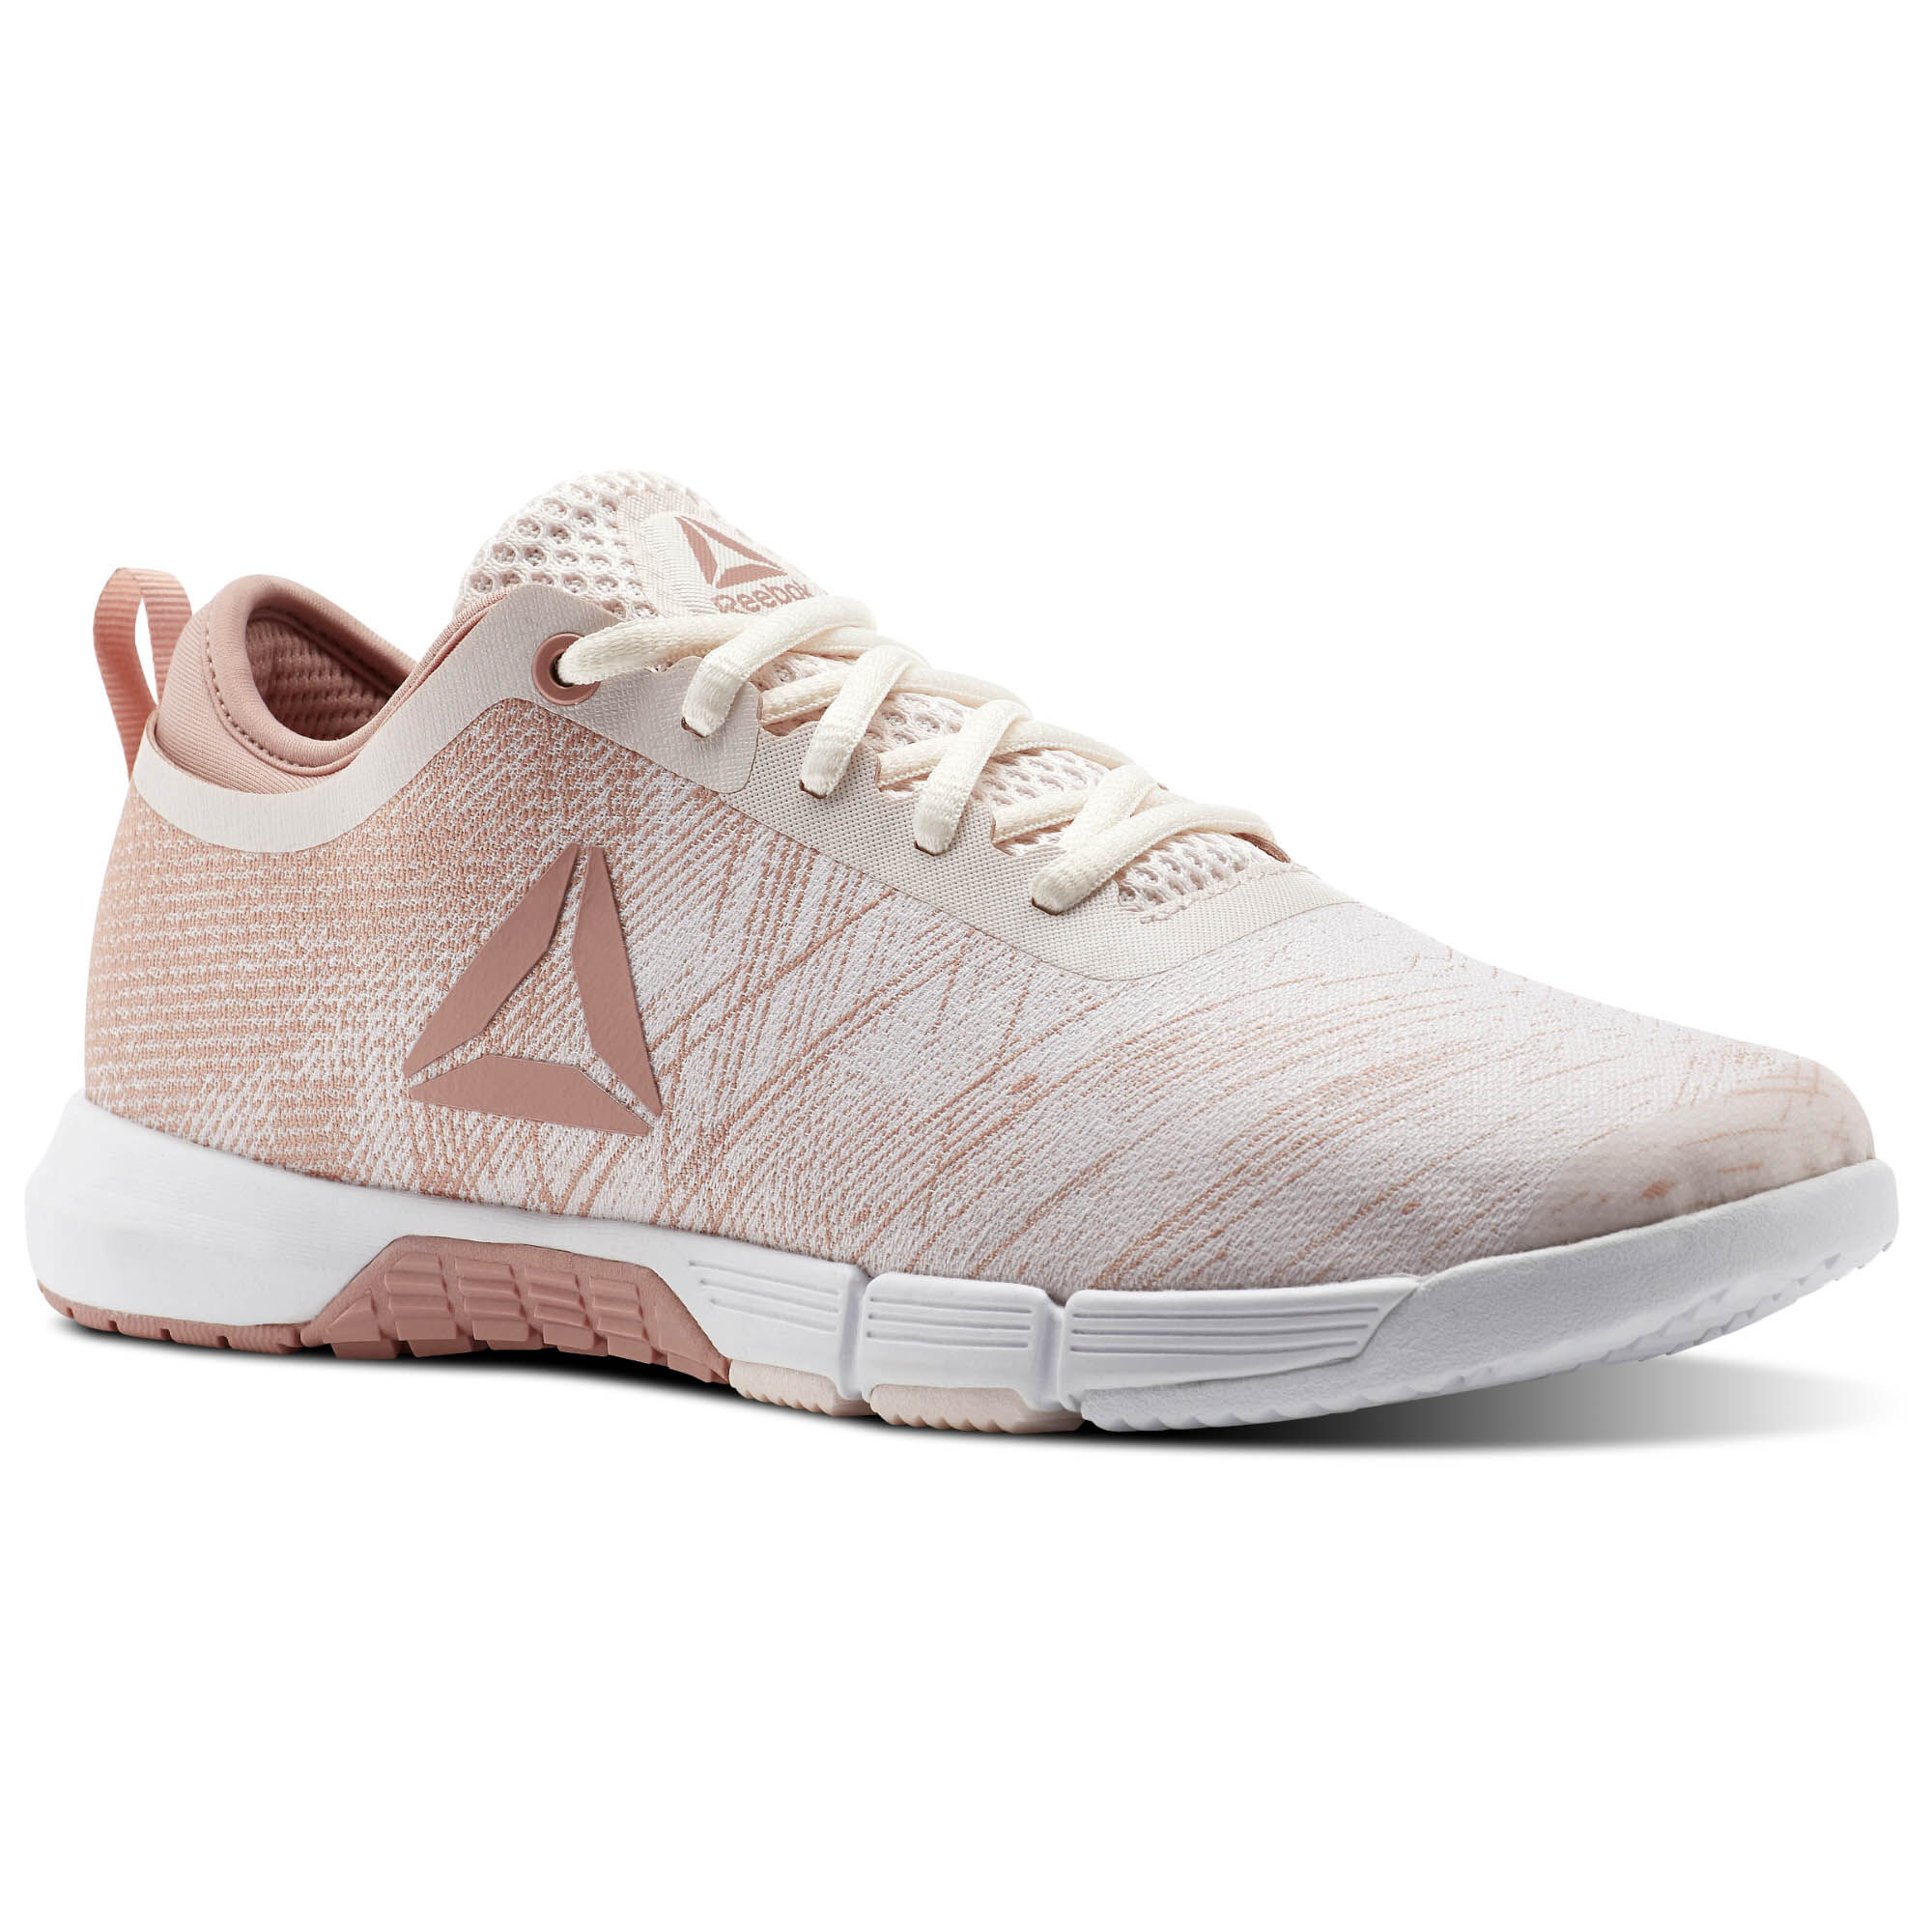 Reebok Training Shoes Speed Her TR For Women White/Pink/Silver CN0993